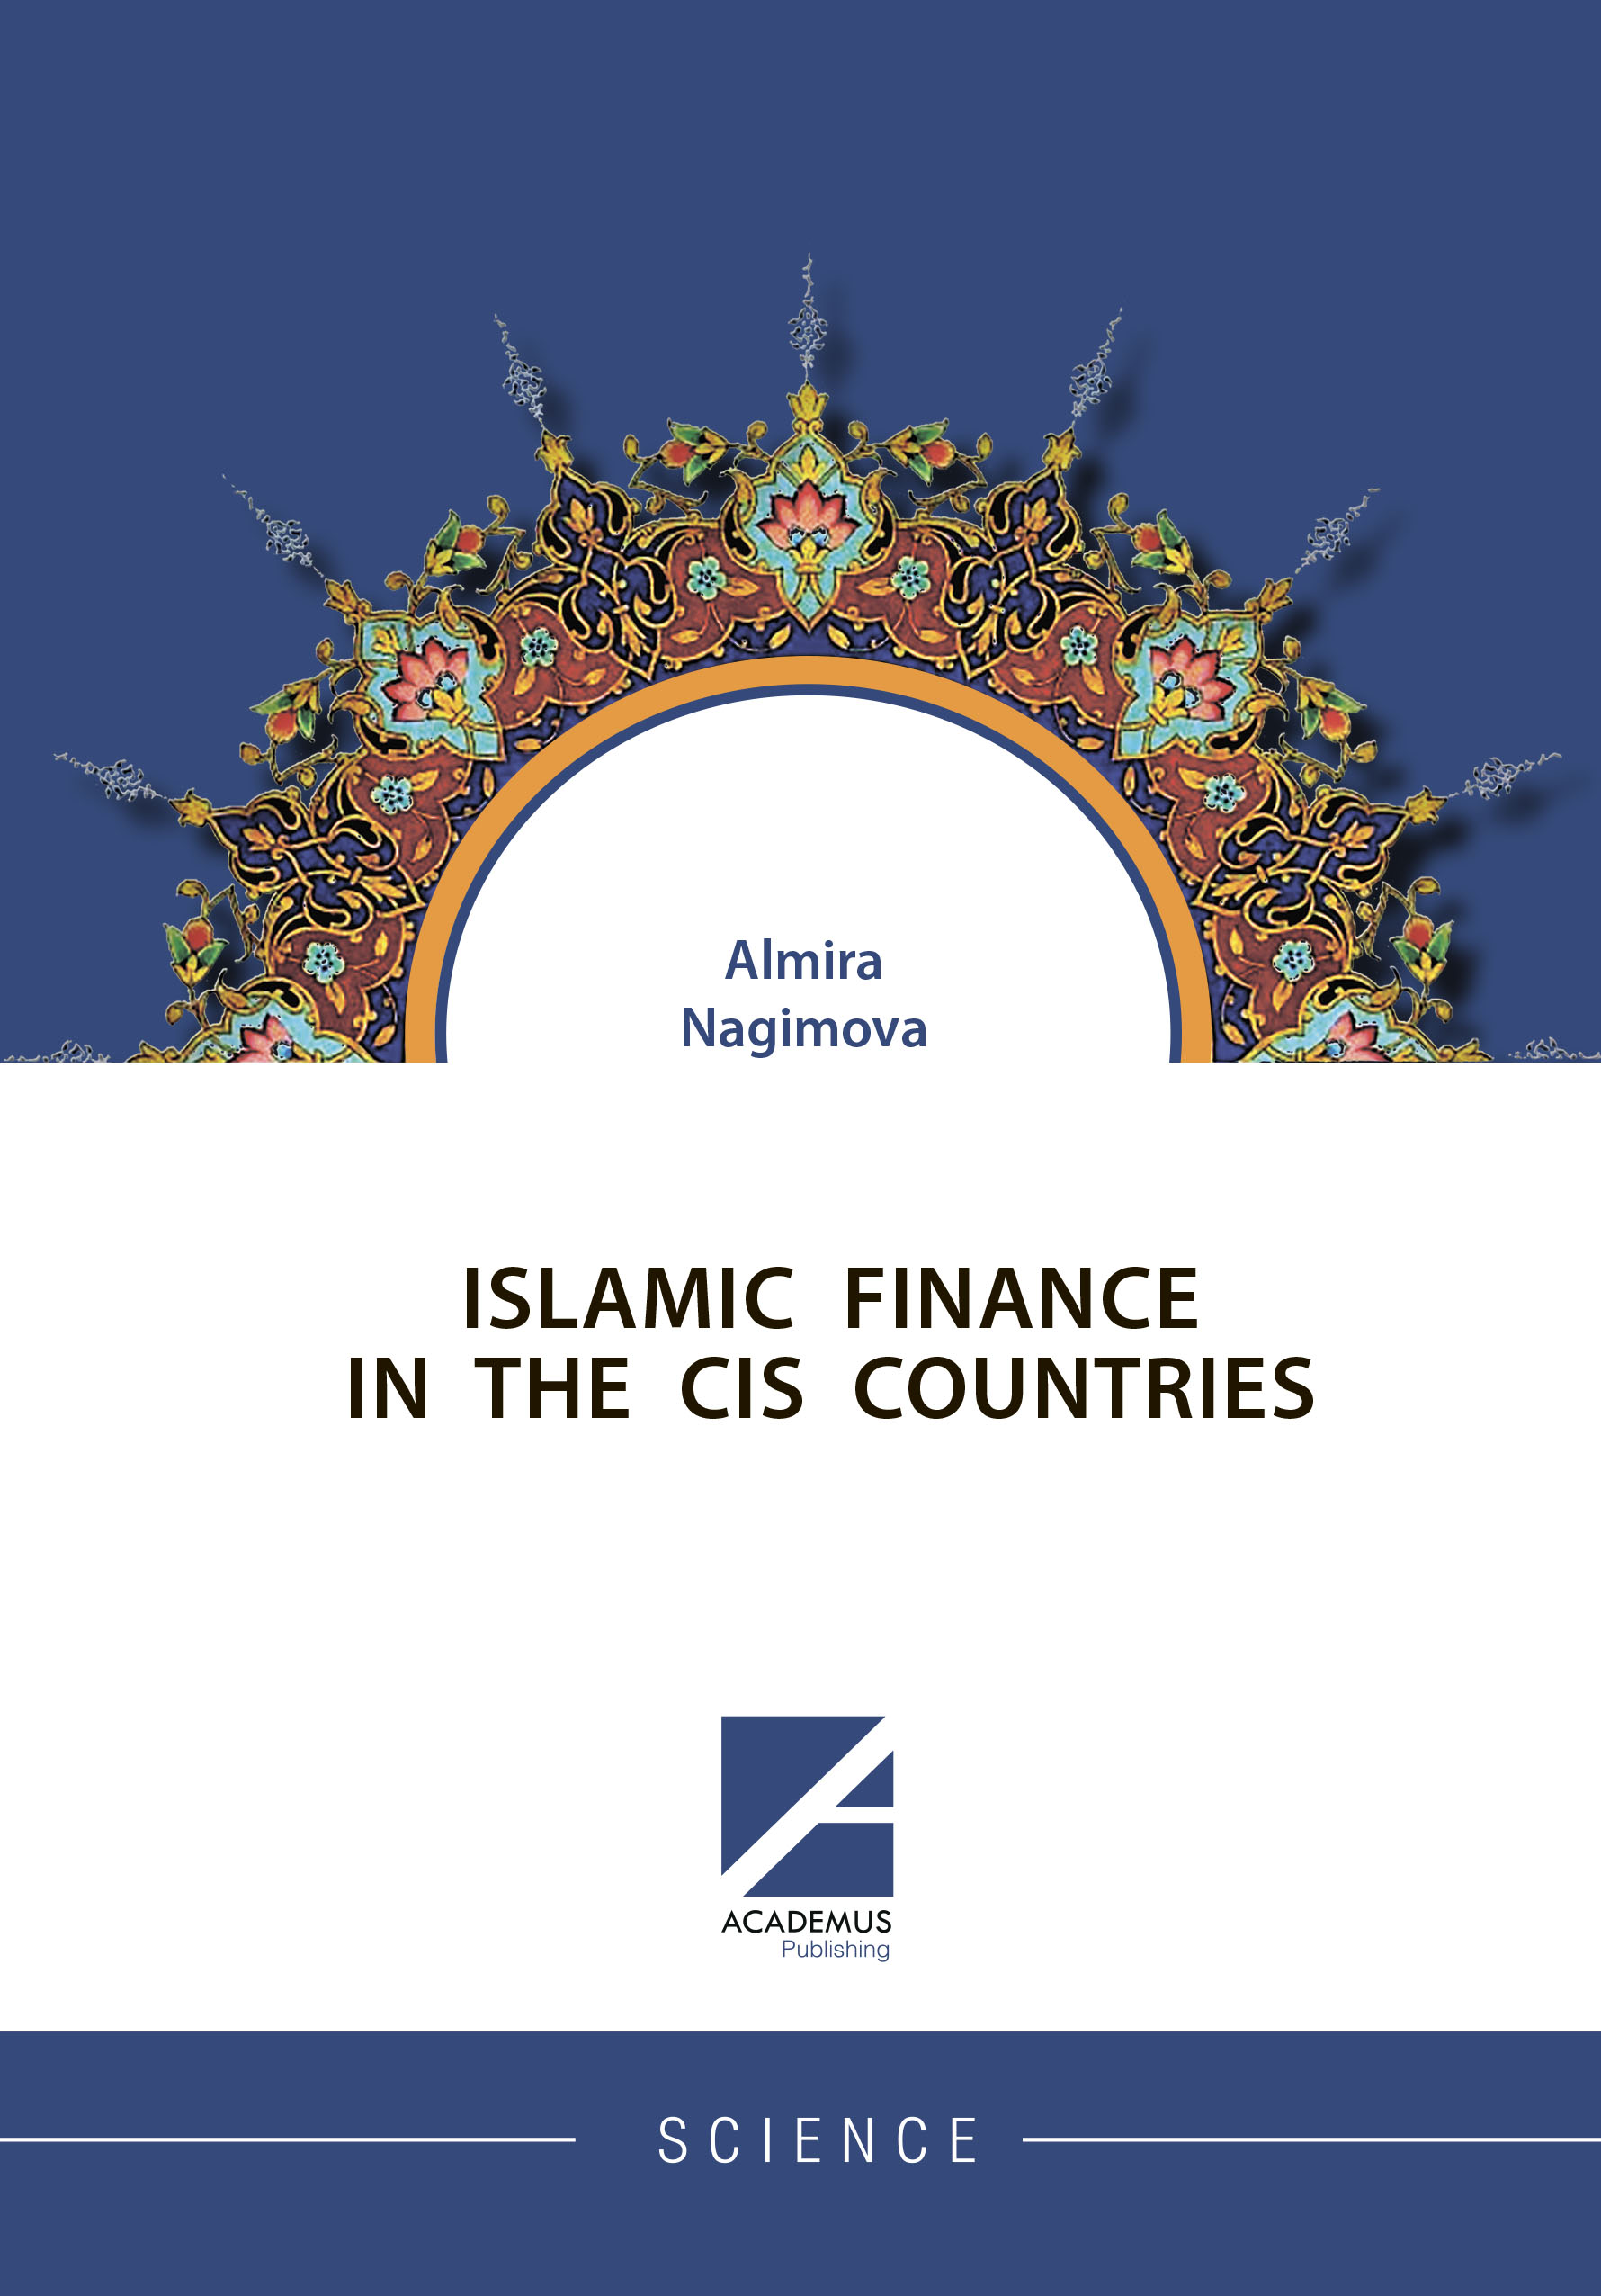 ISLAMIC FINANCE IN THE CIS COUNTRIES